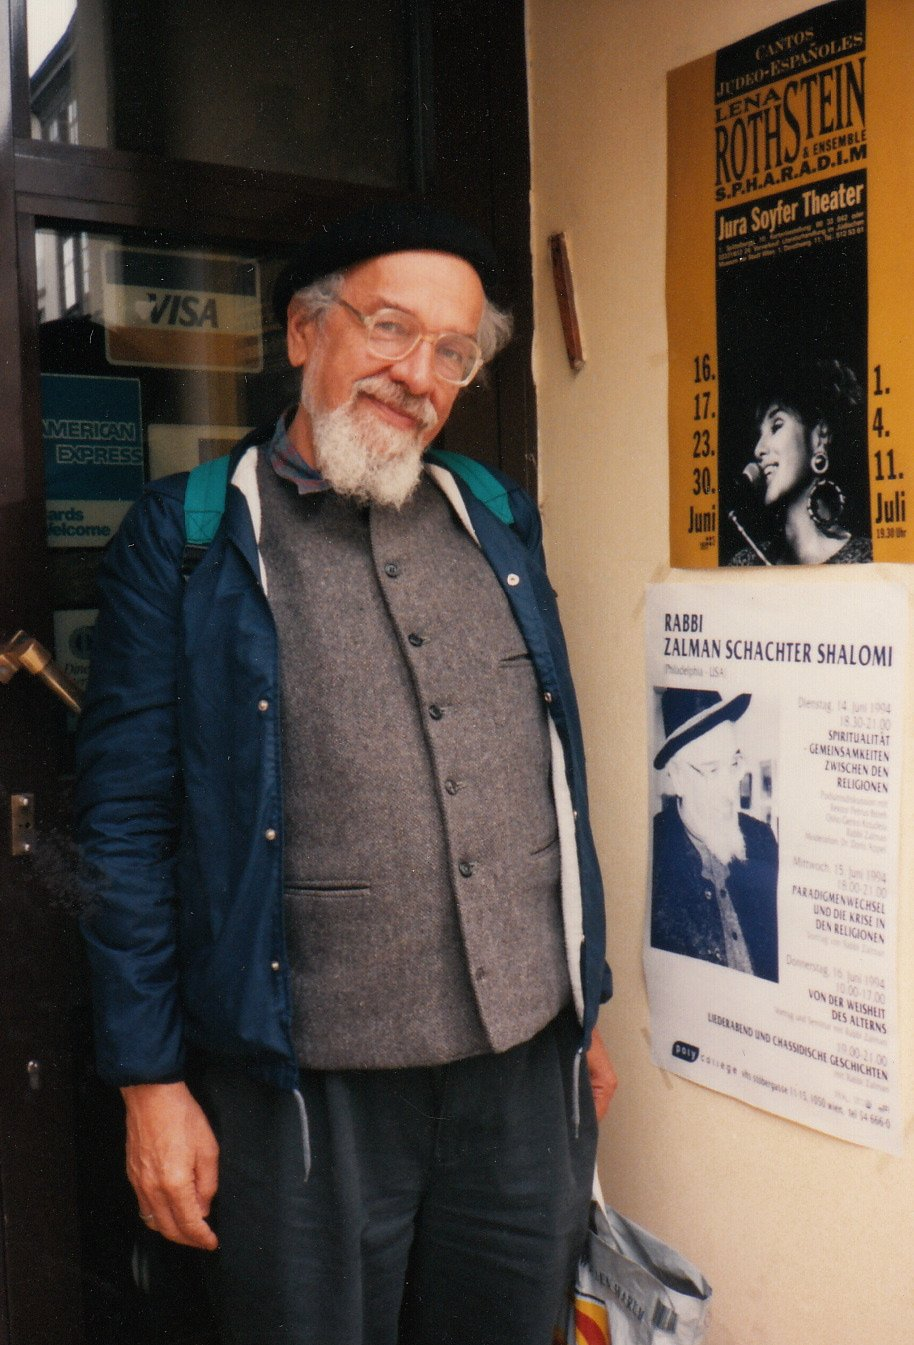 Rabbi Zalman Schachter-Shalomi standing next to a poster advertising his lecture in Vienna, Austria, June 1994.